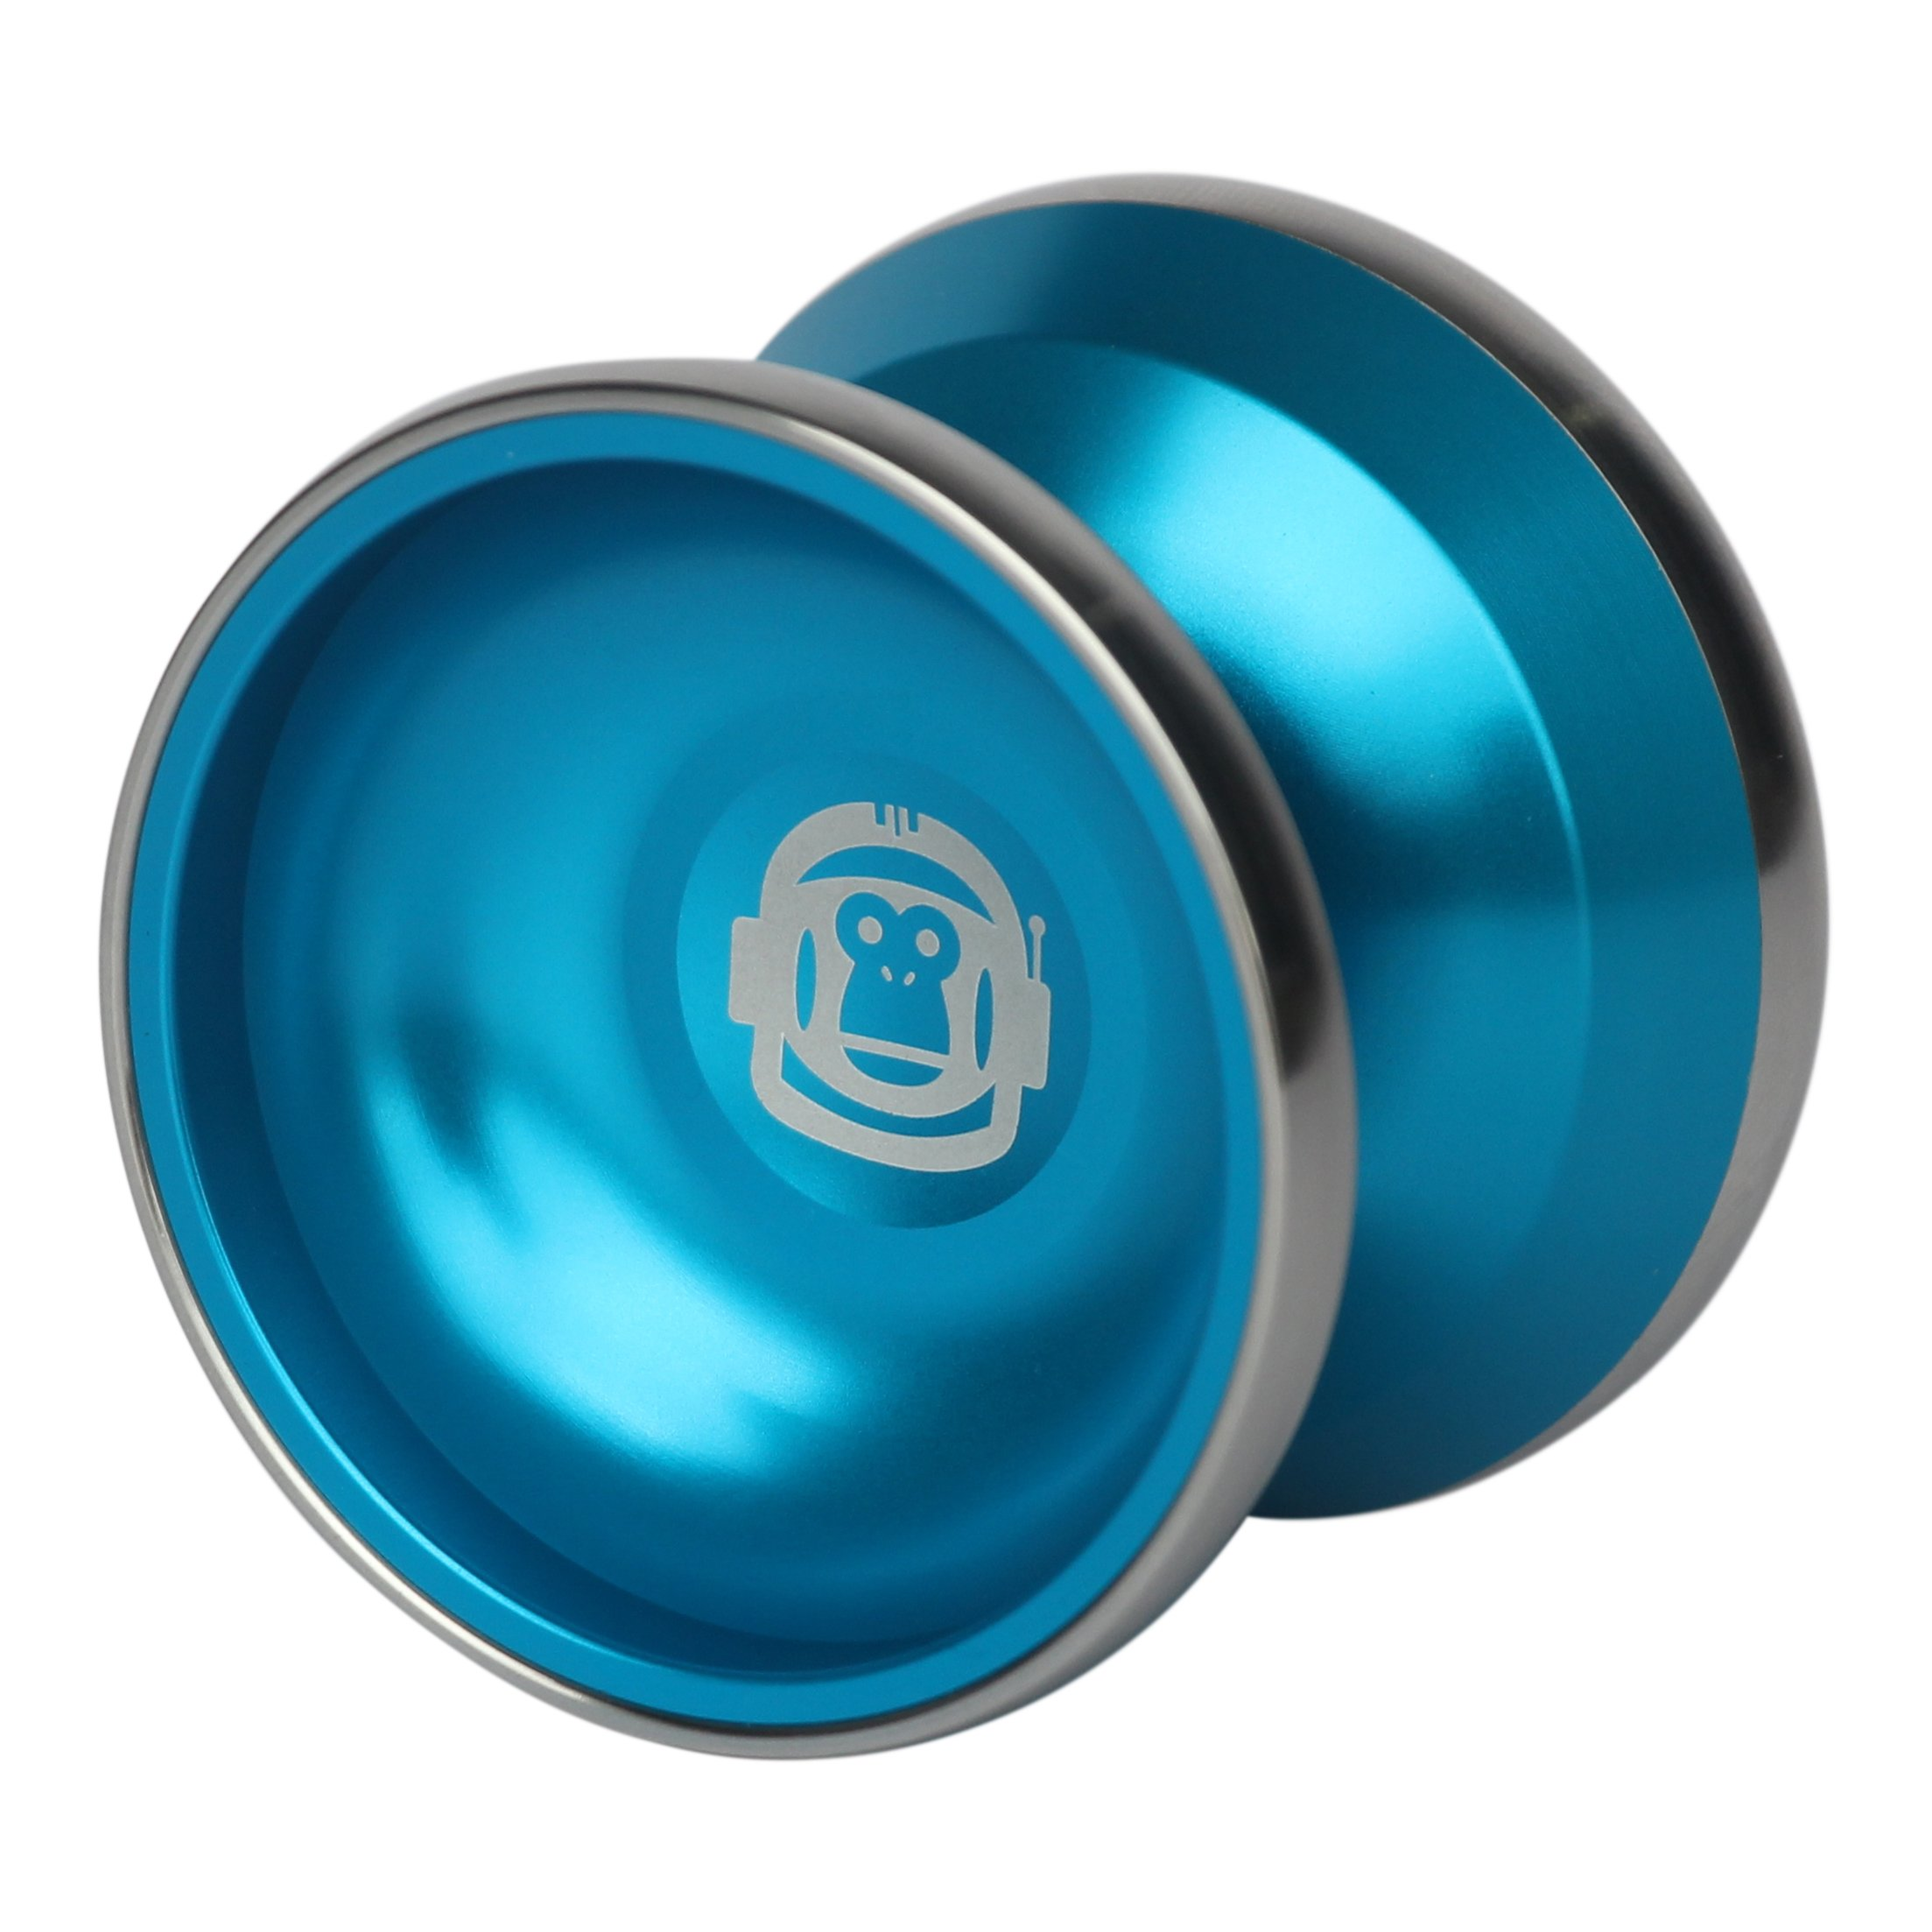 Spintastics Space Monkey Professional Bimetal Aluminum Steel Yoyo with Long Spin Ball Bearing Axle and Extra String by Spintastics